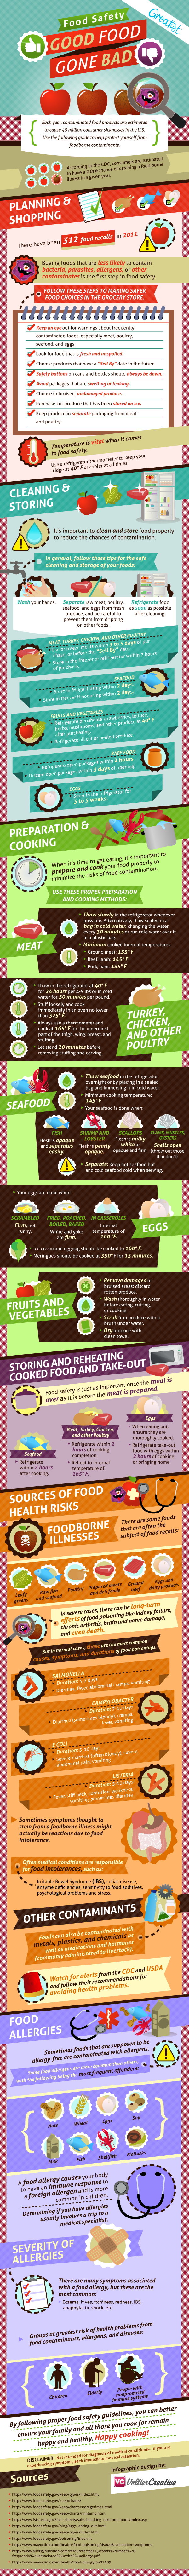 Simple Methods to Prevent Food Wastage - Infographic